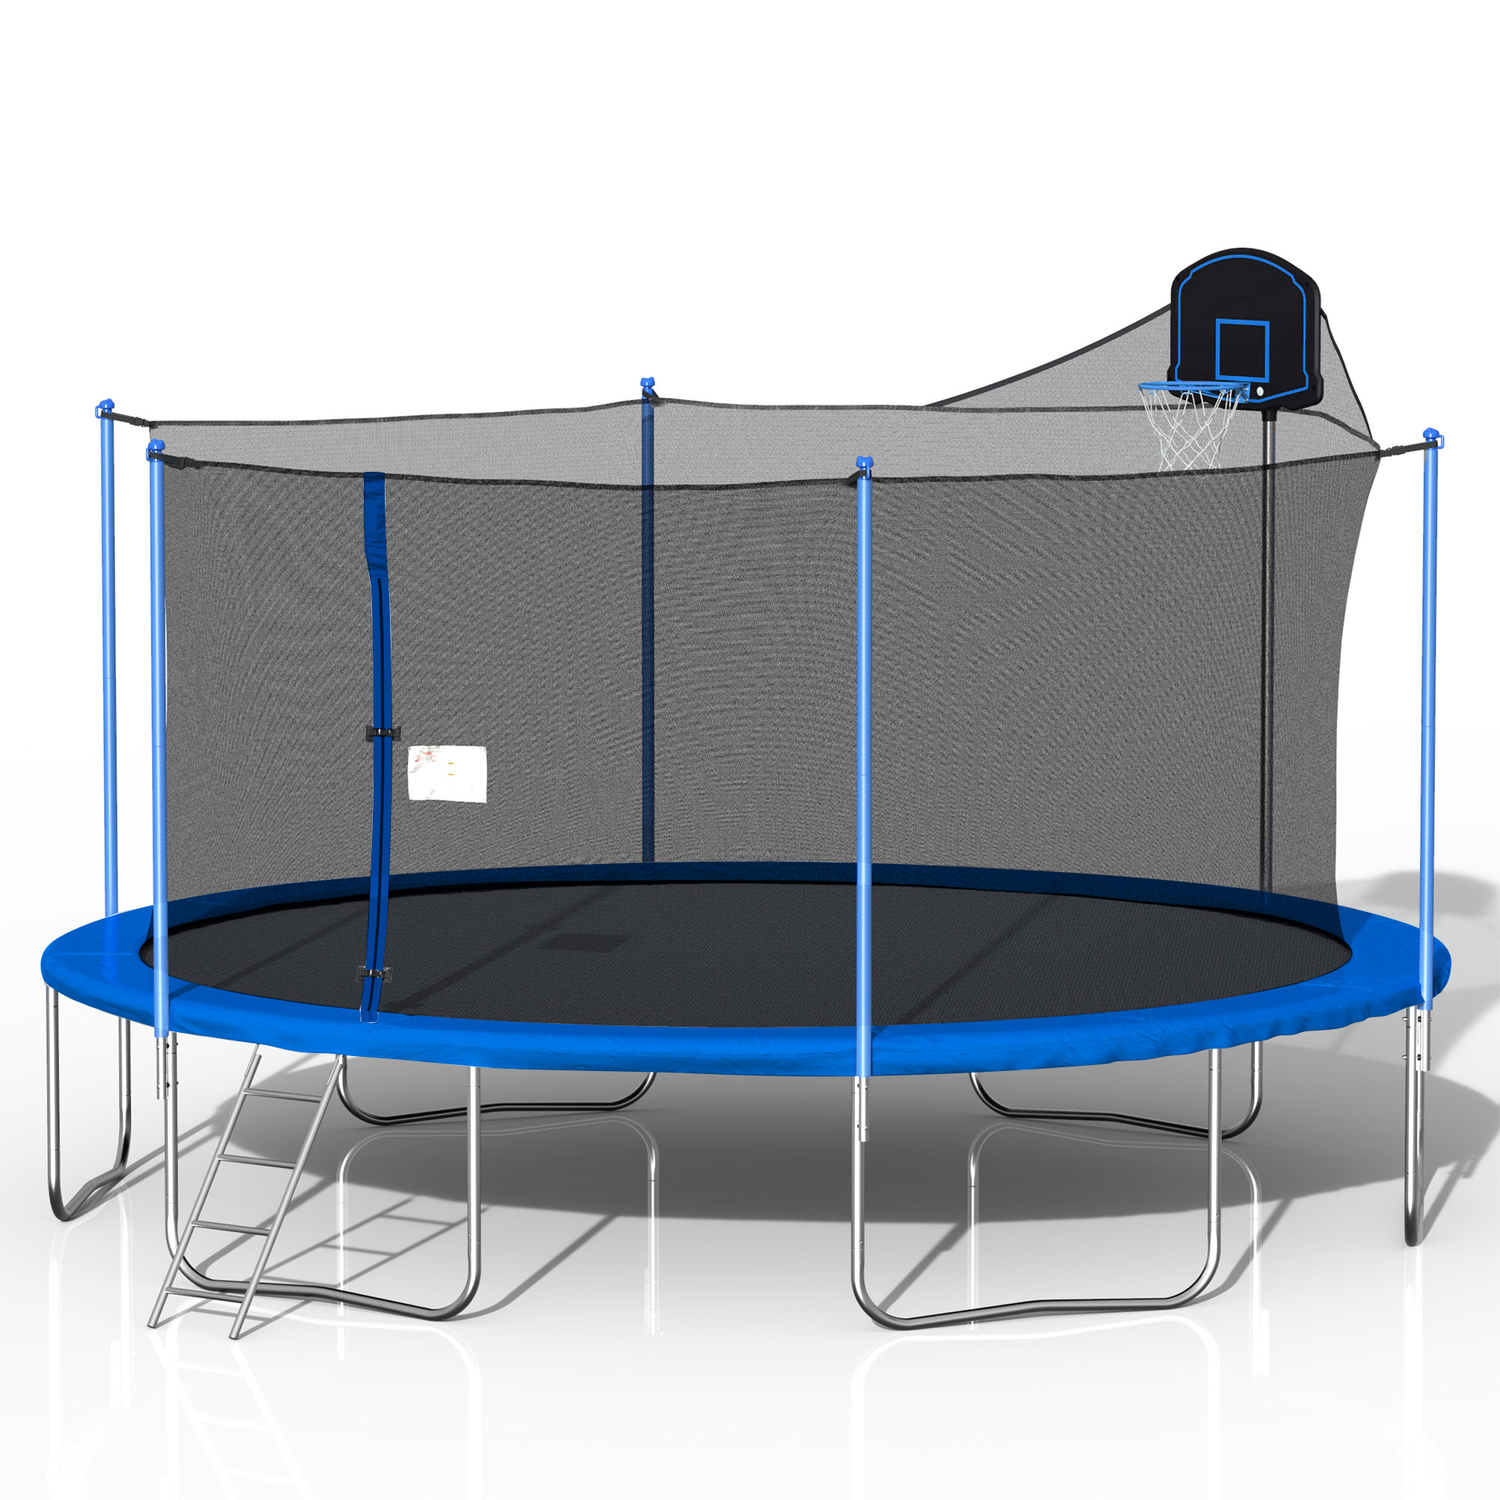 [US Direct]Bominfit 16Inch Fitness Trampoline with Basketball Frame Aerobic Jump Training Gym Exercise Jump Kids Adult Home Garden Exercise Tools